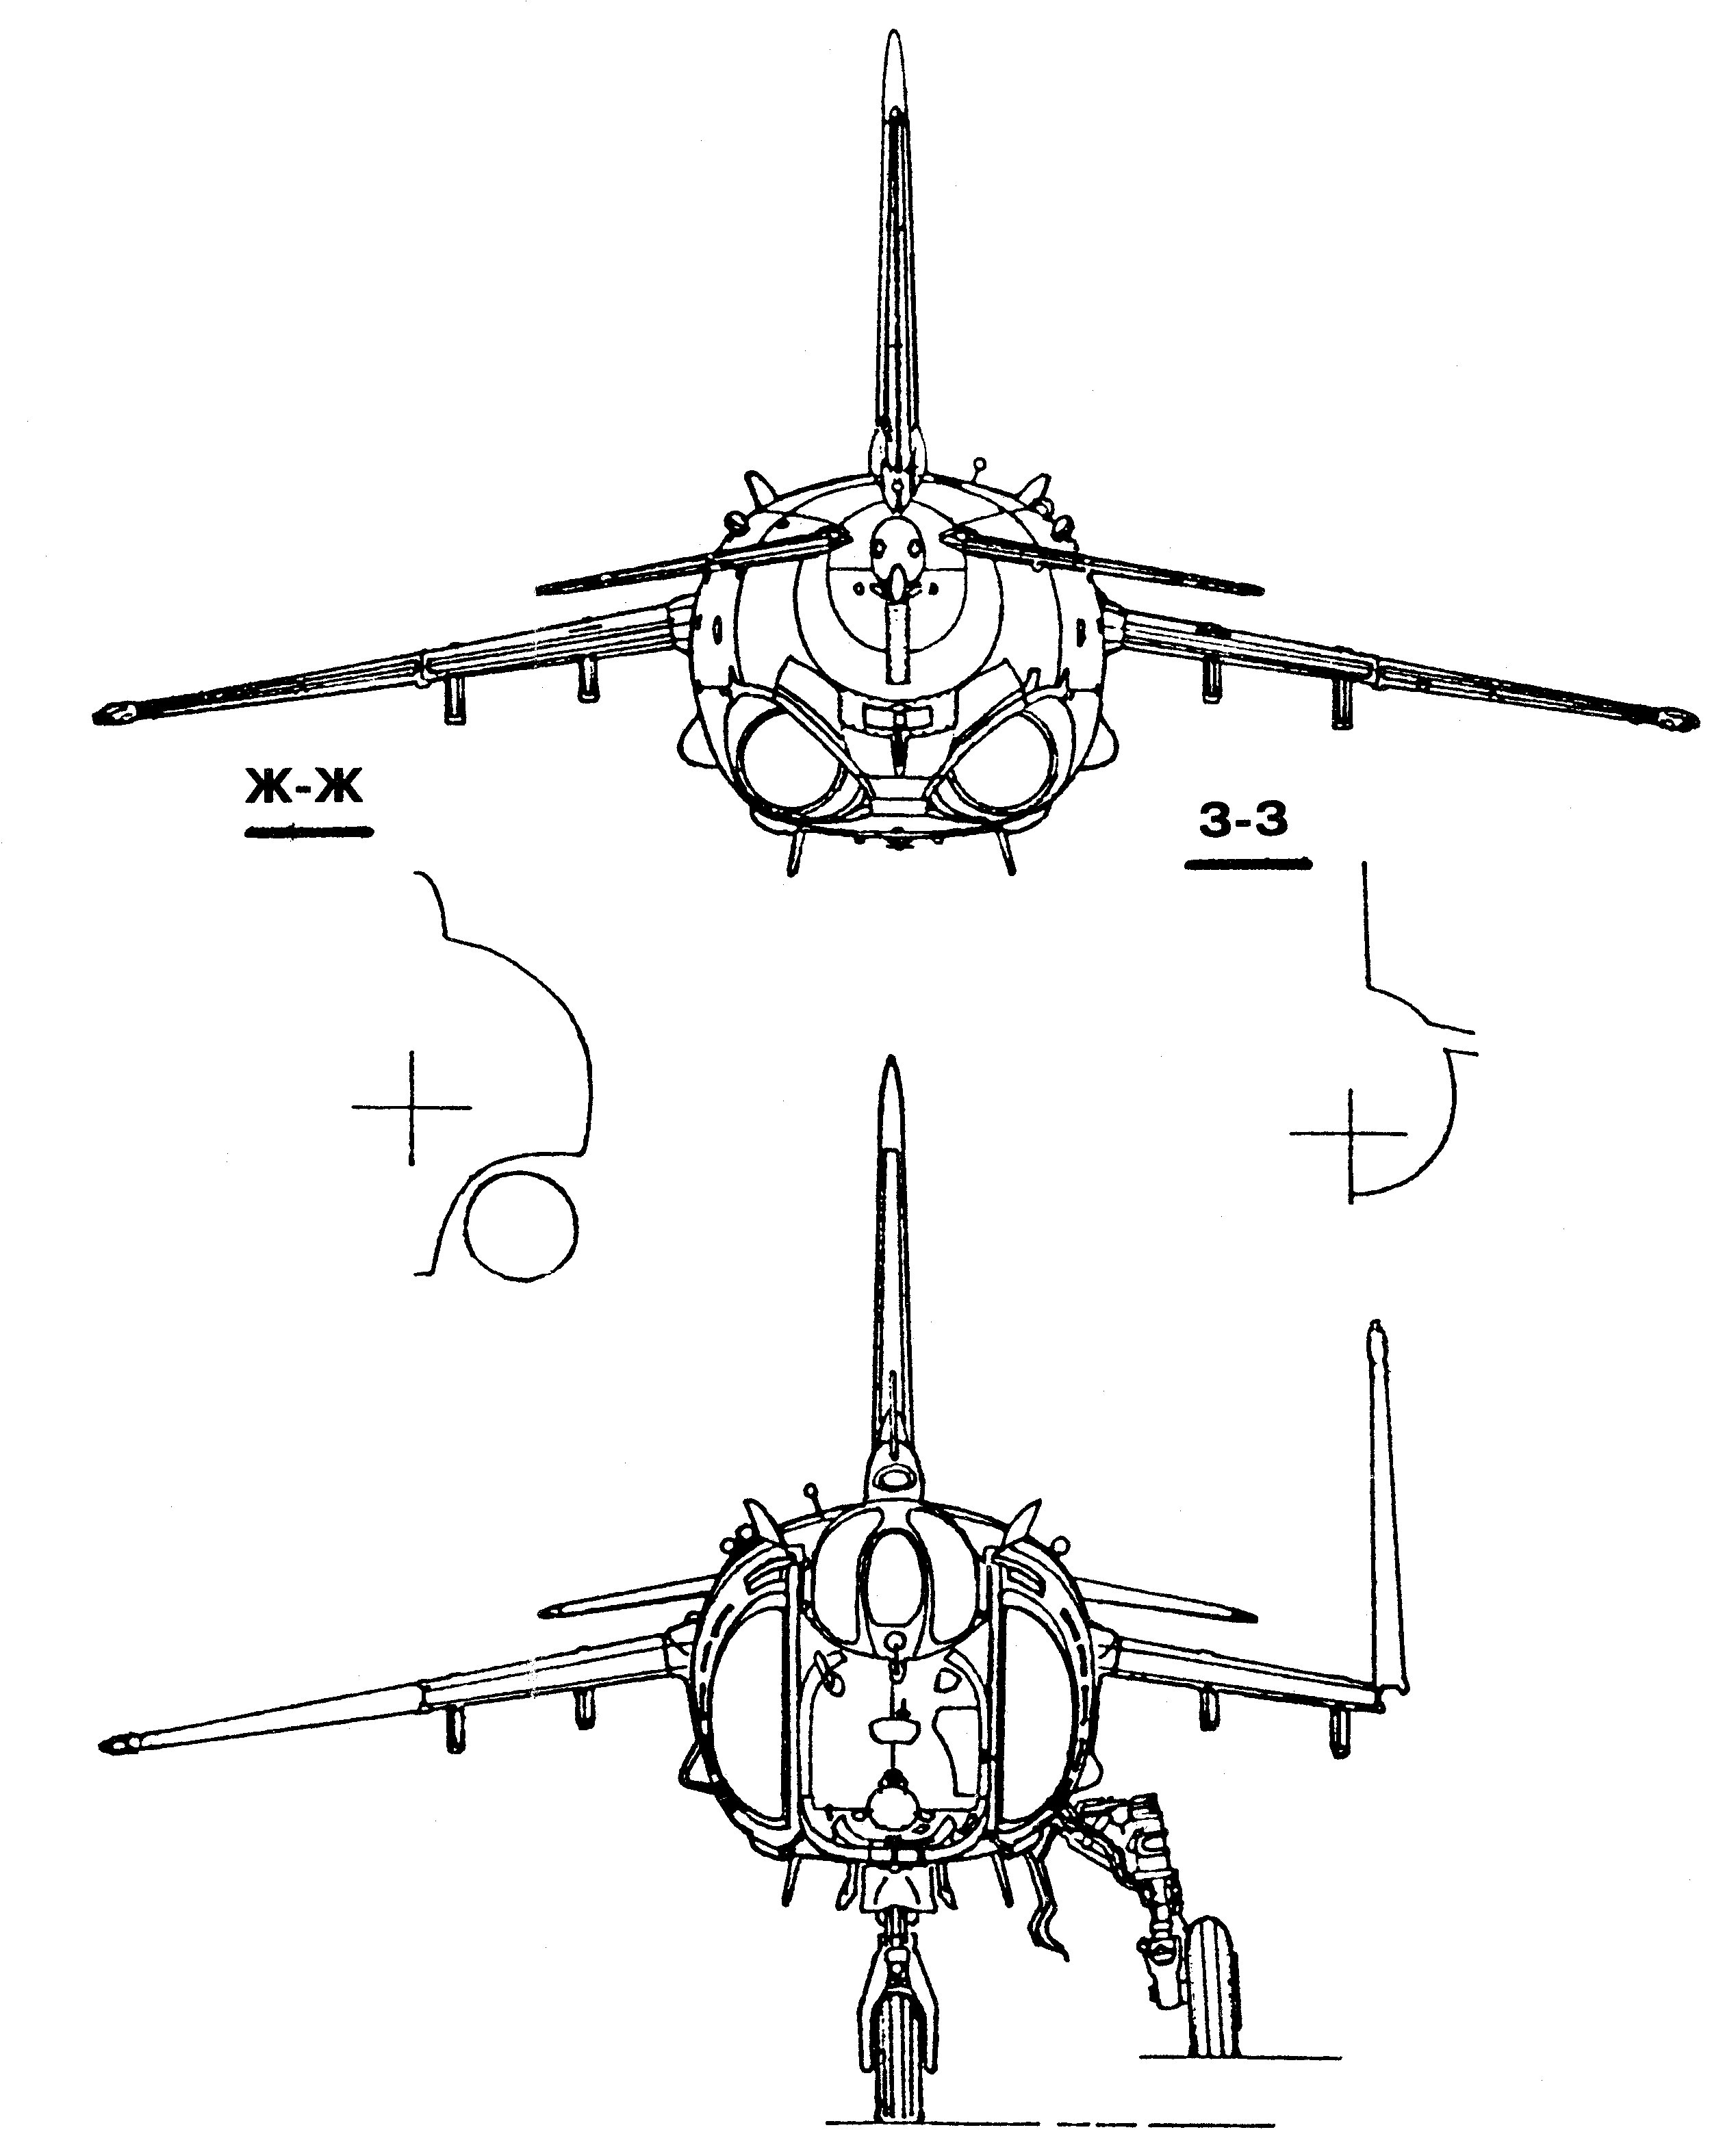 Yak-38 blueprint